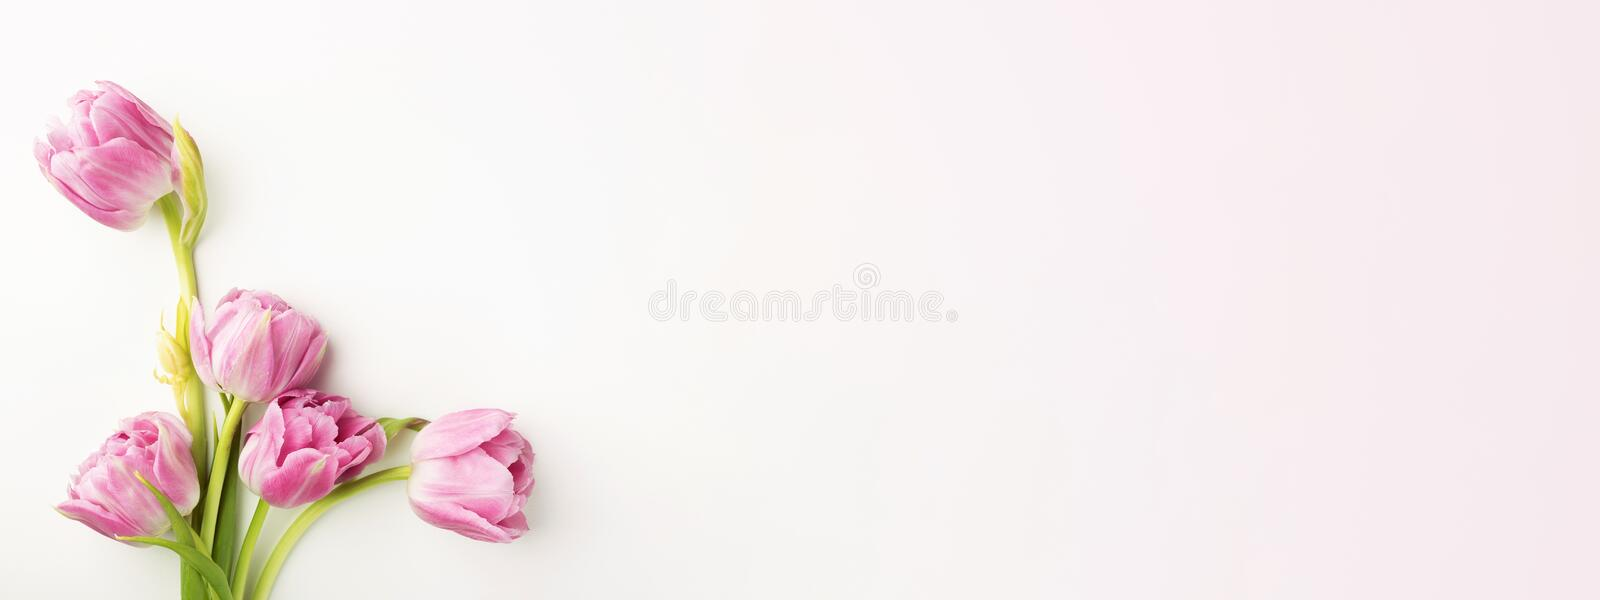 Pink tulips on white background. royalty free stock images